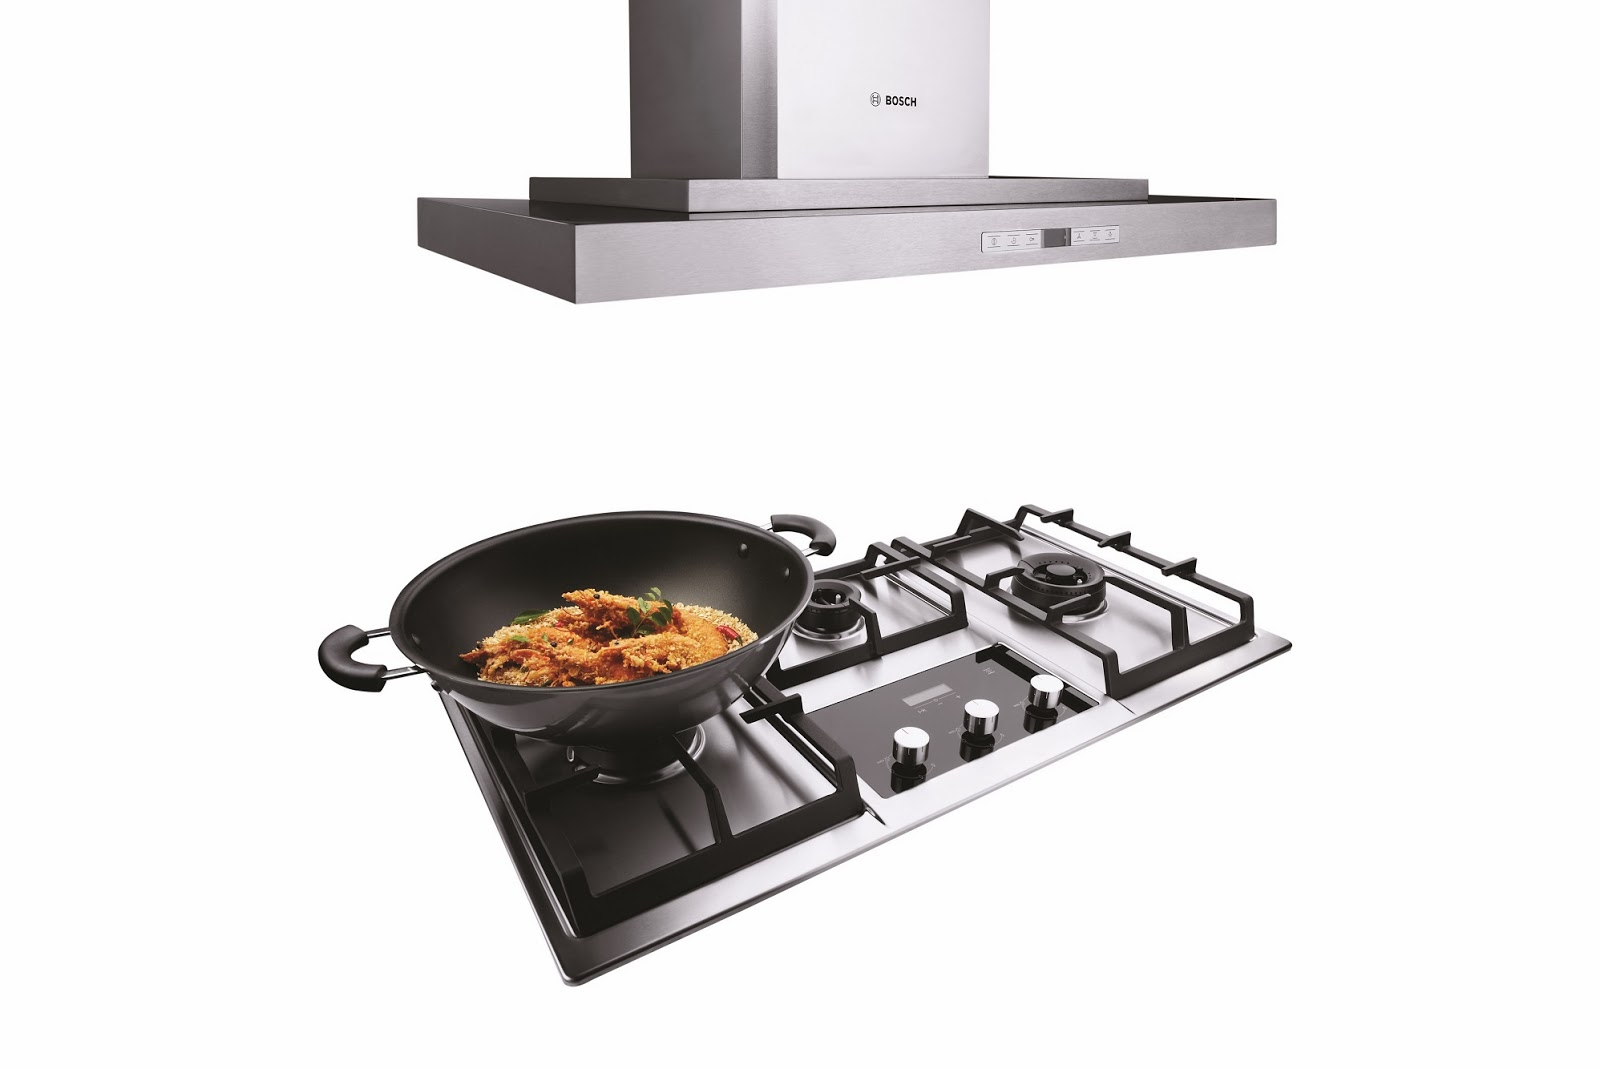 Chinese Kitchen Range Hood Gadgets Stores The Launch Of Intelligent Bosch Asian With